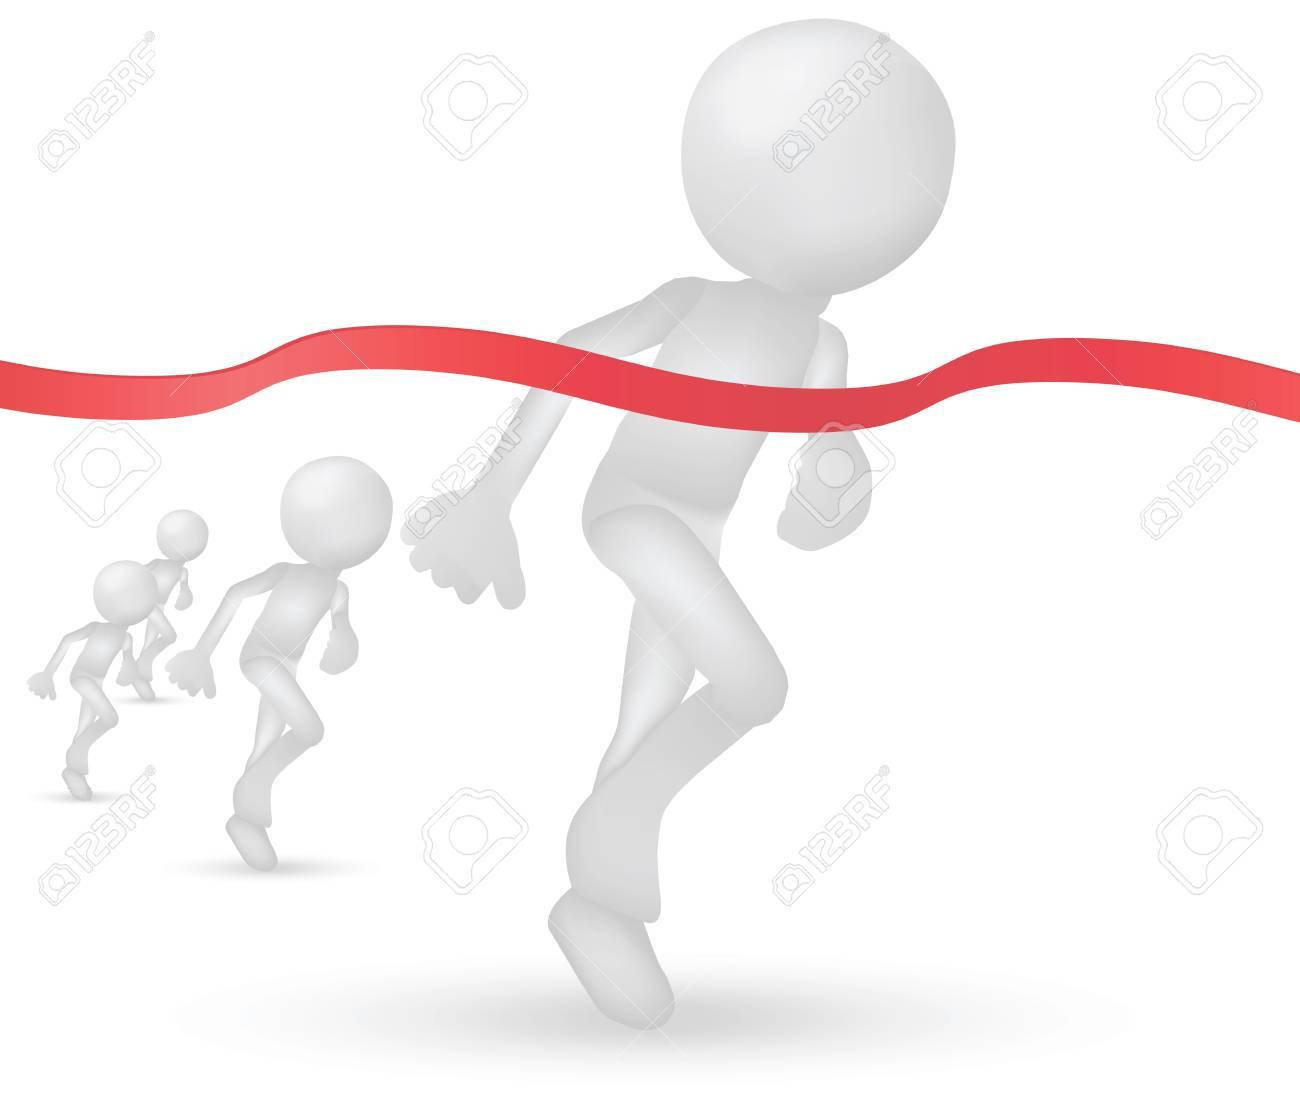 Illustration of 3d humans crossing the finishing line Stock Vector - 19505921